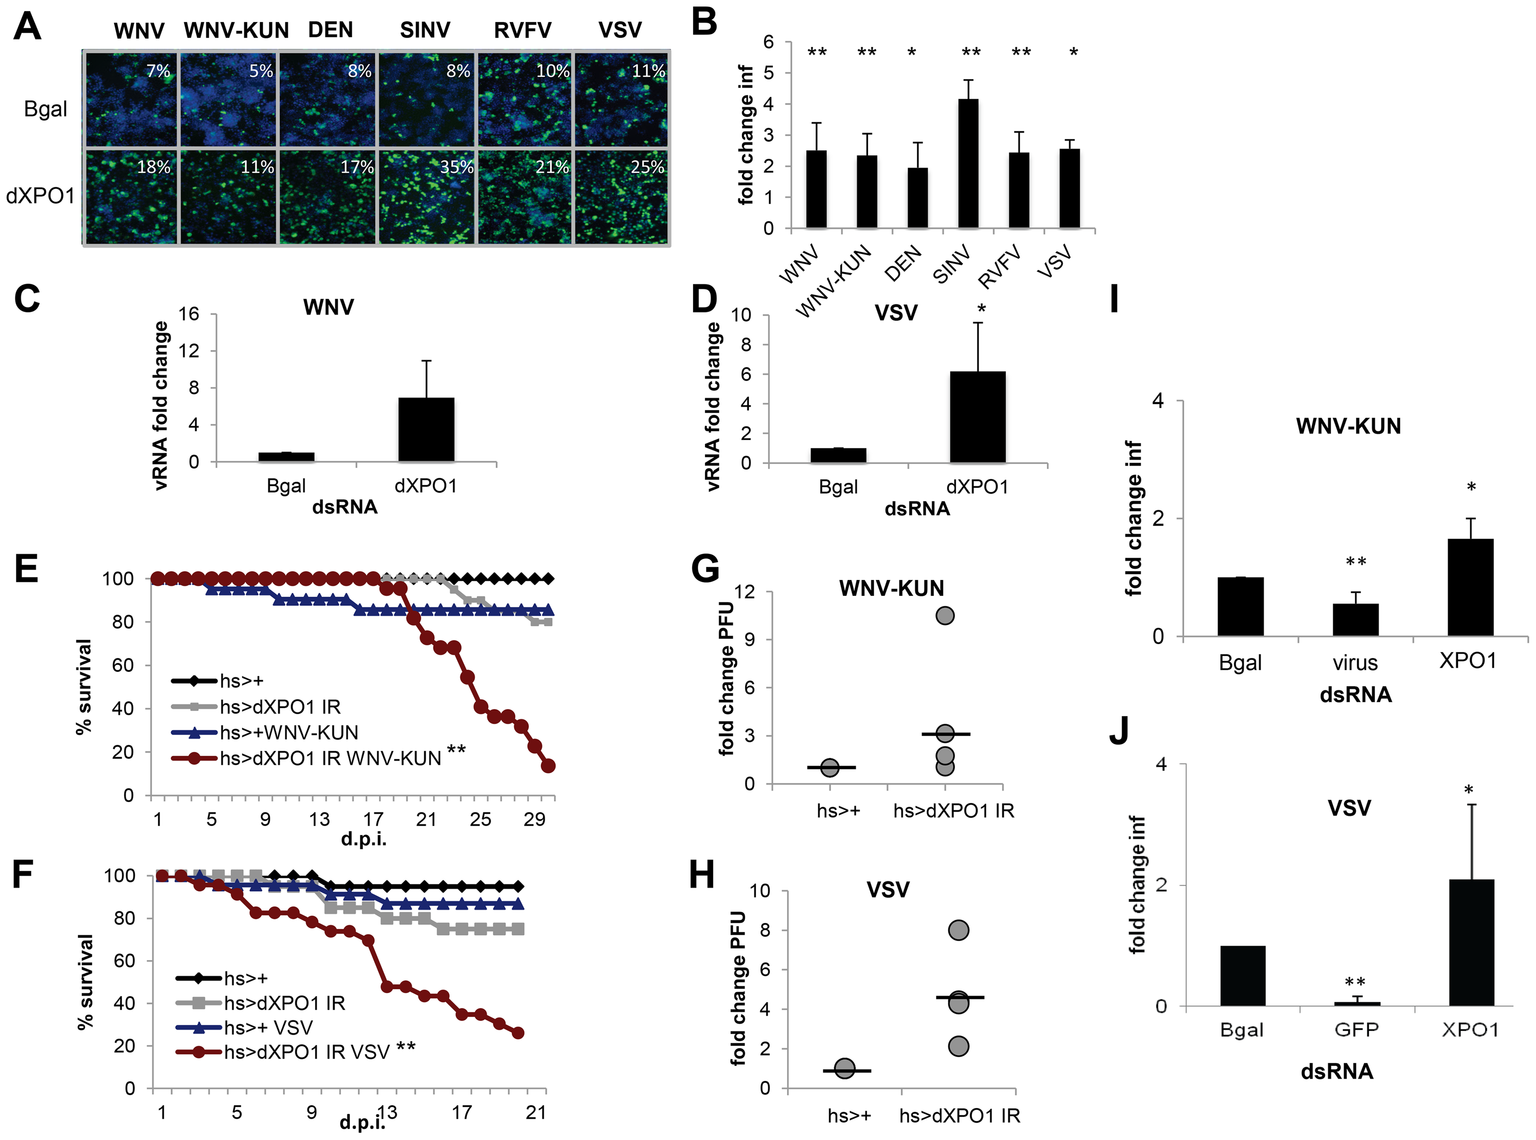 dXPO1 has antiviral activity in insects.